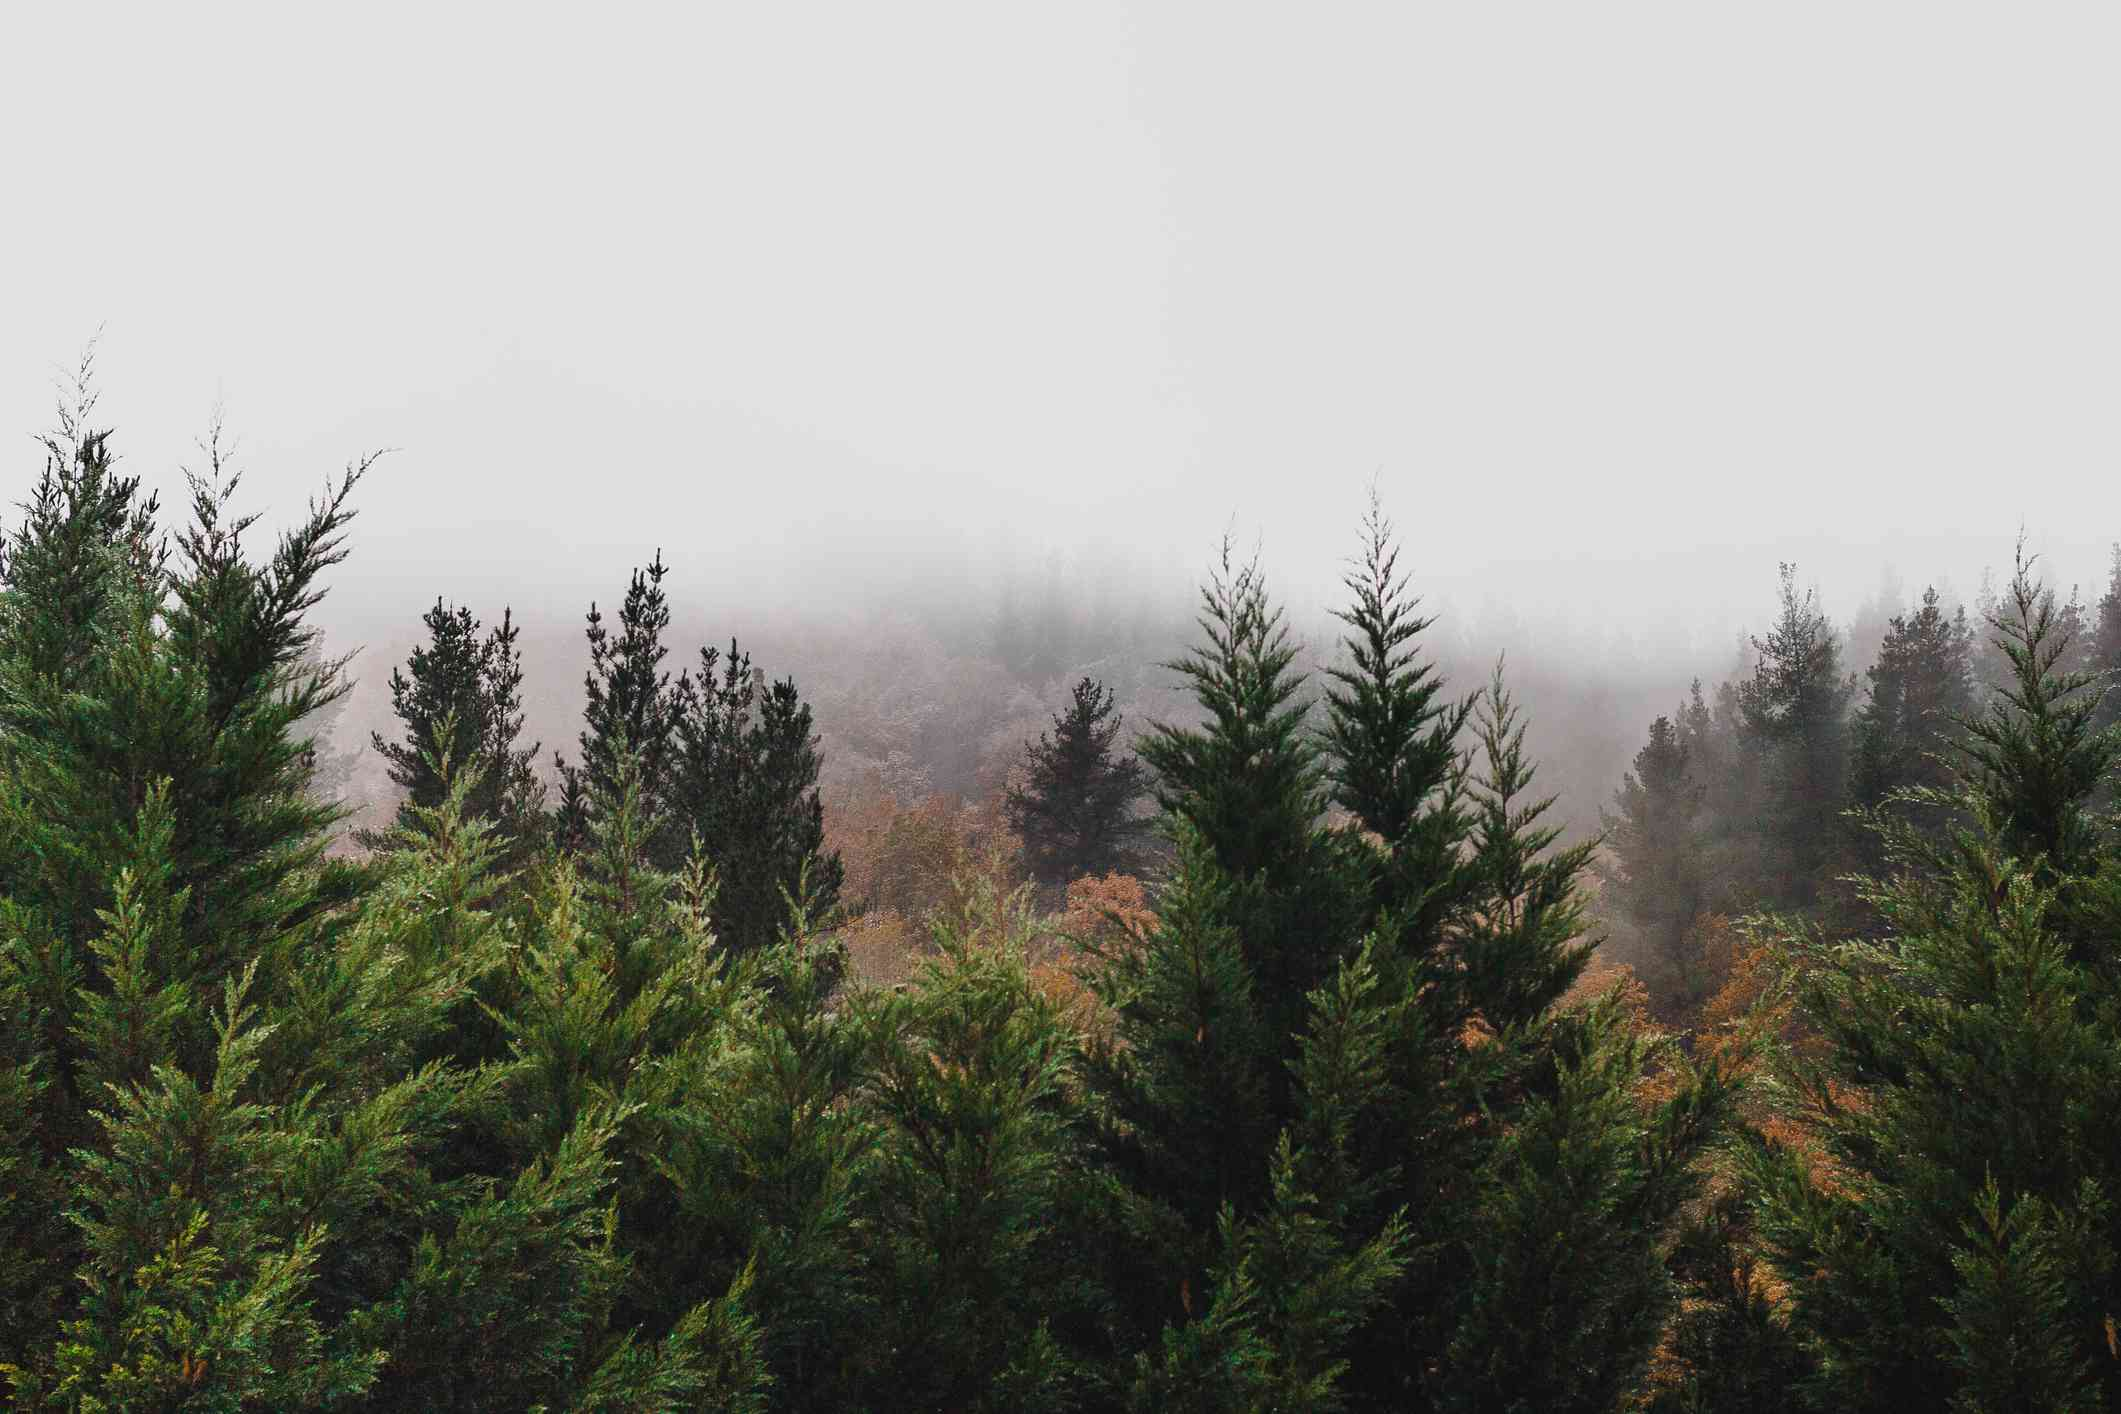 Fir tree forest with misty backdrop.